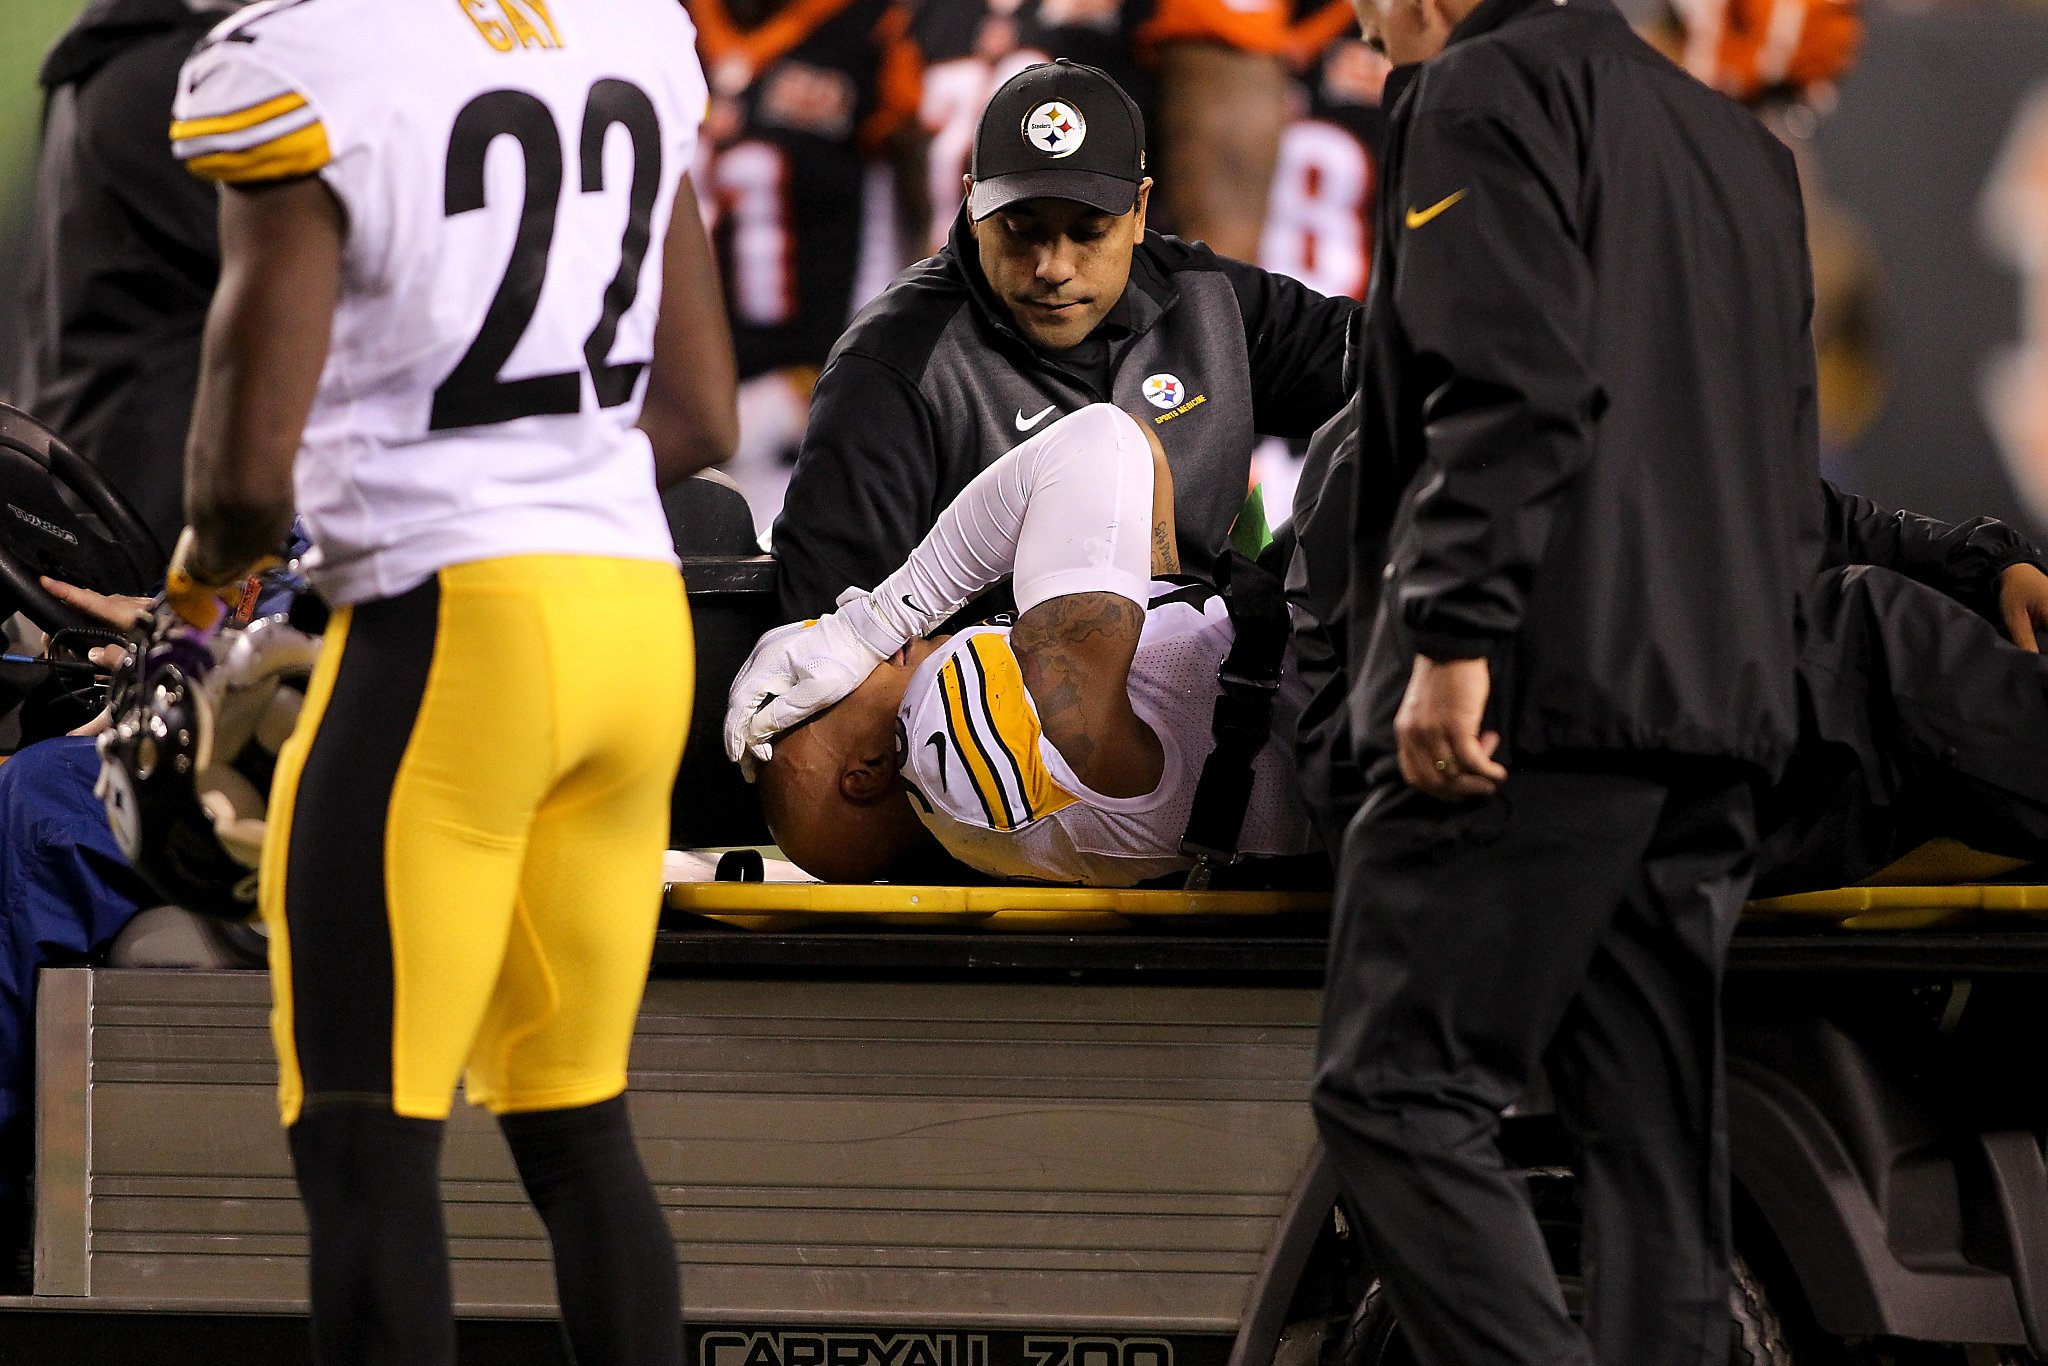 Steelers' Shazier remains in hospital